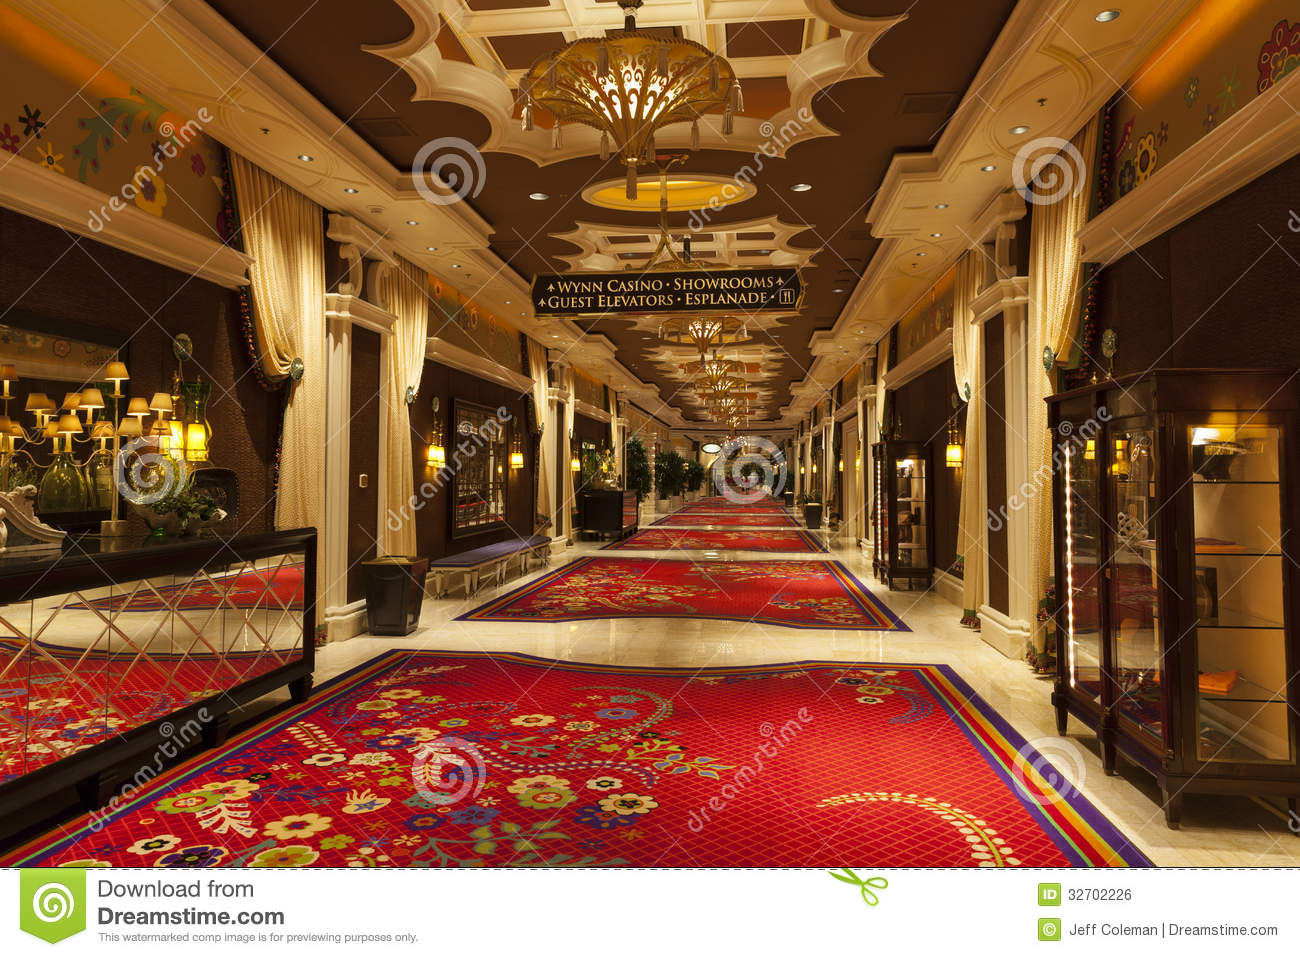 Wynn Hotel Interior In Las Vegas Nv On August 02 2013